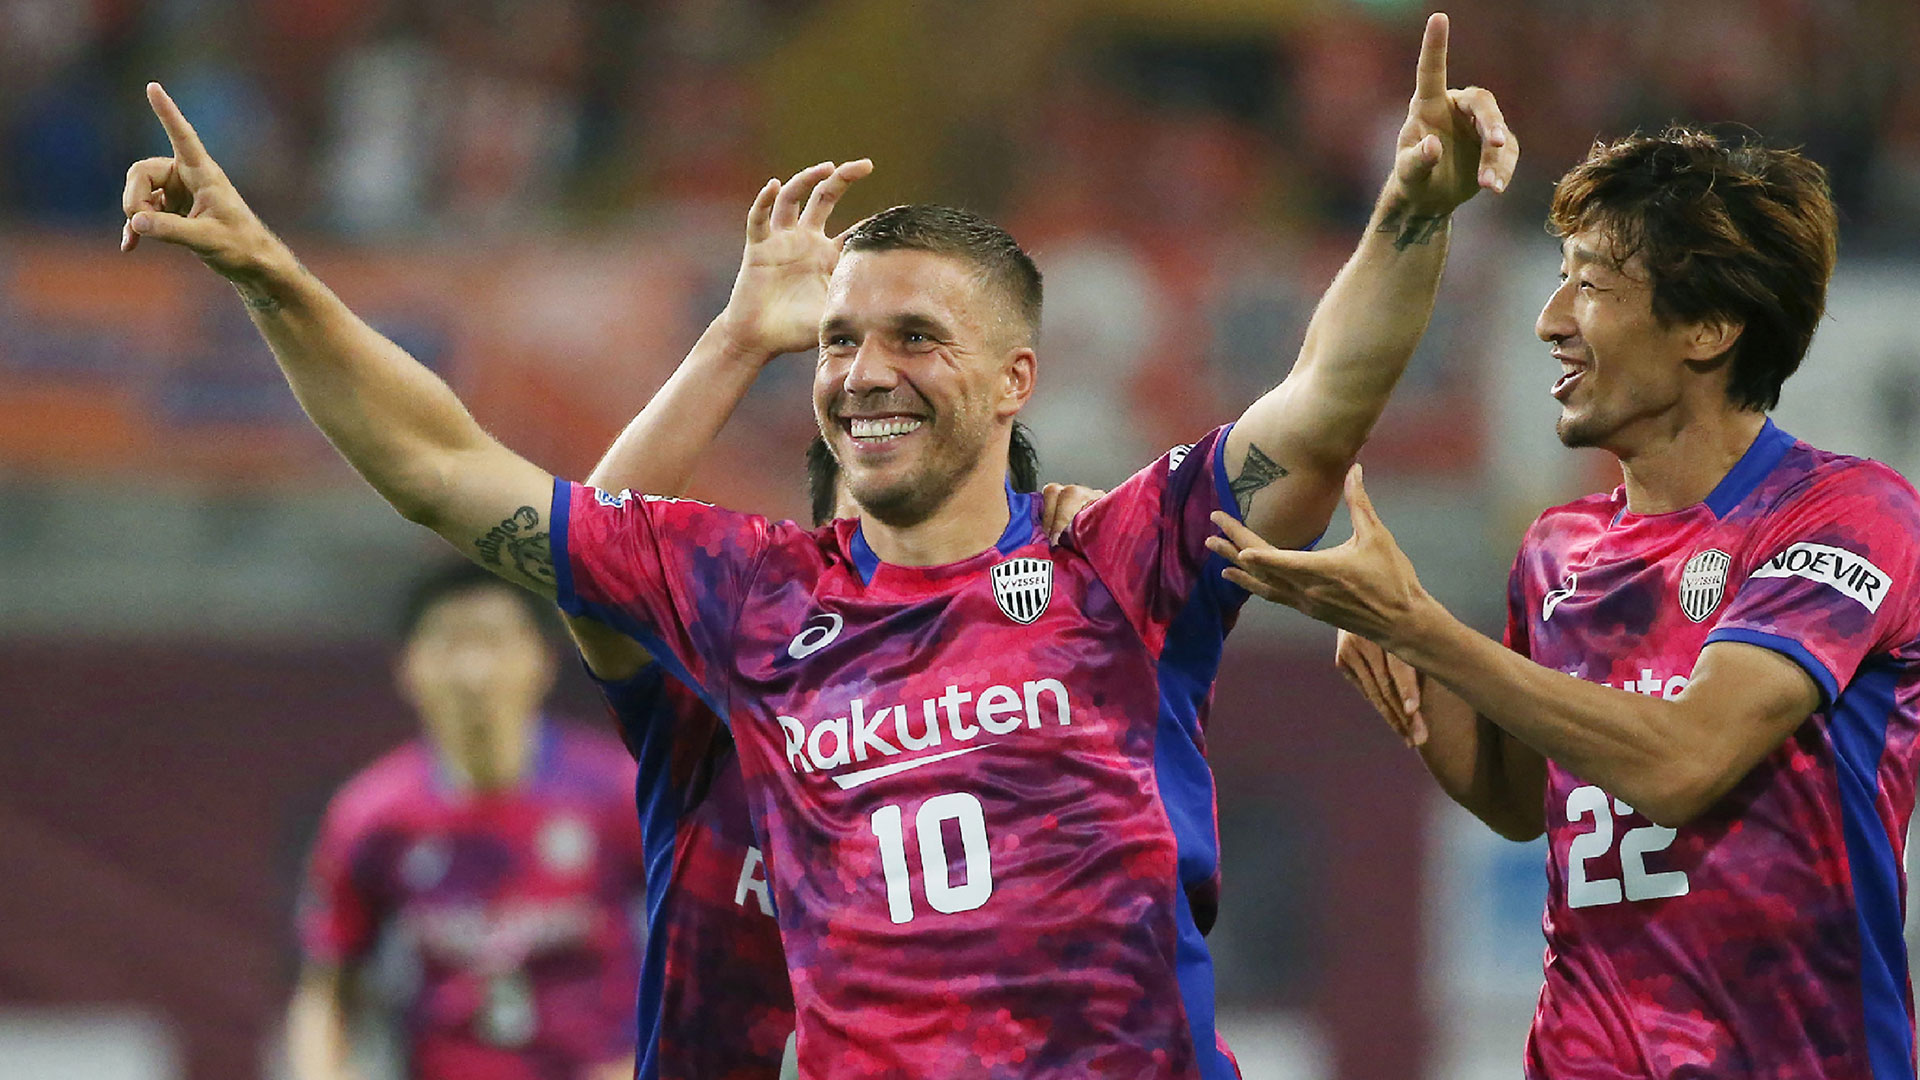 Podolski set to join Antalyaspor from Vissel Kobe